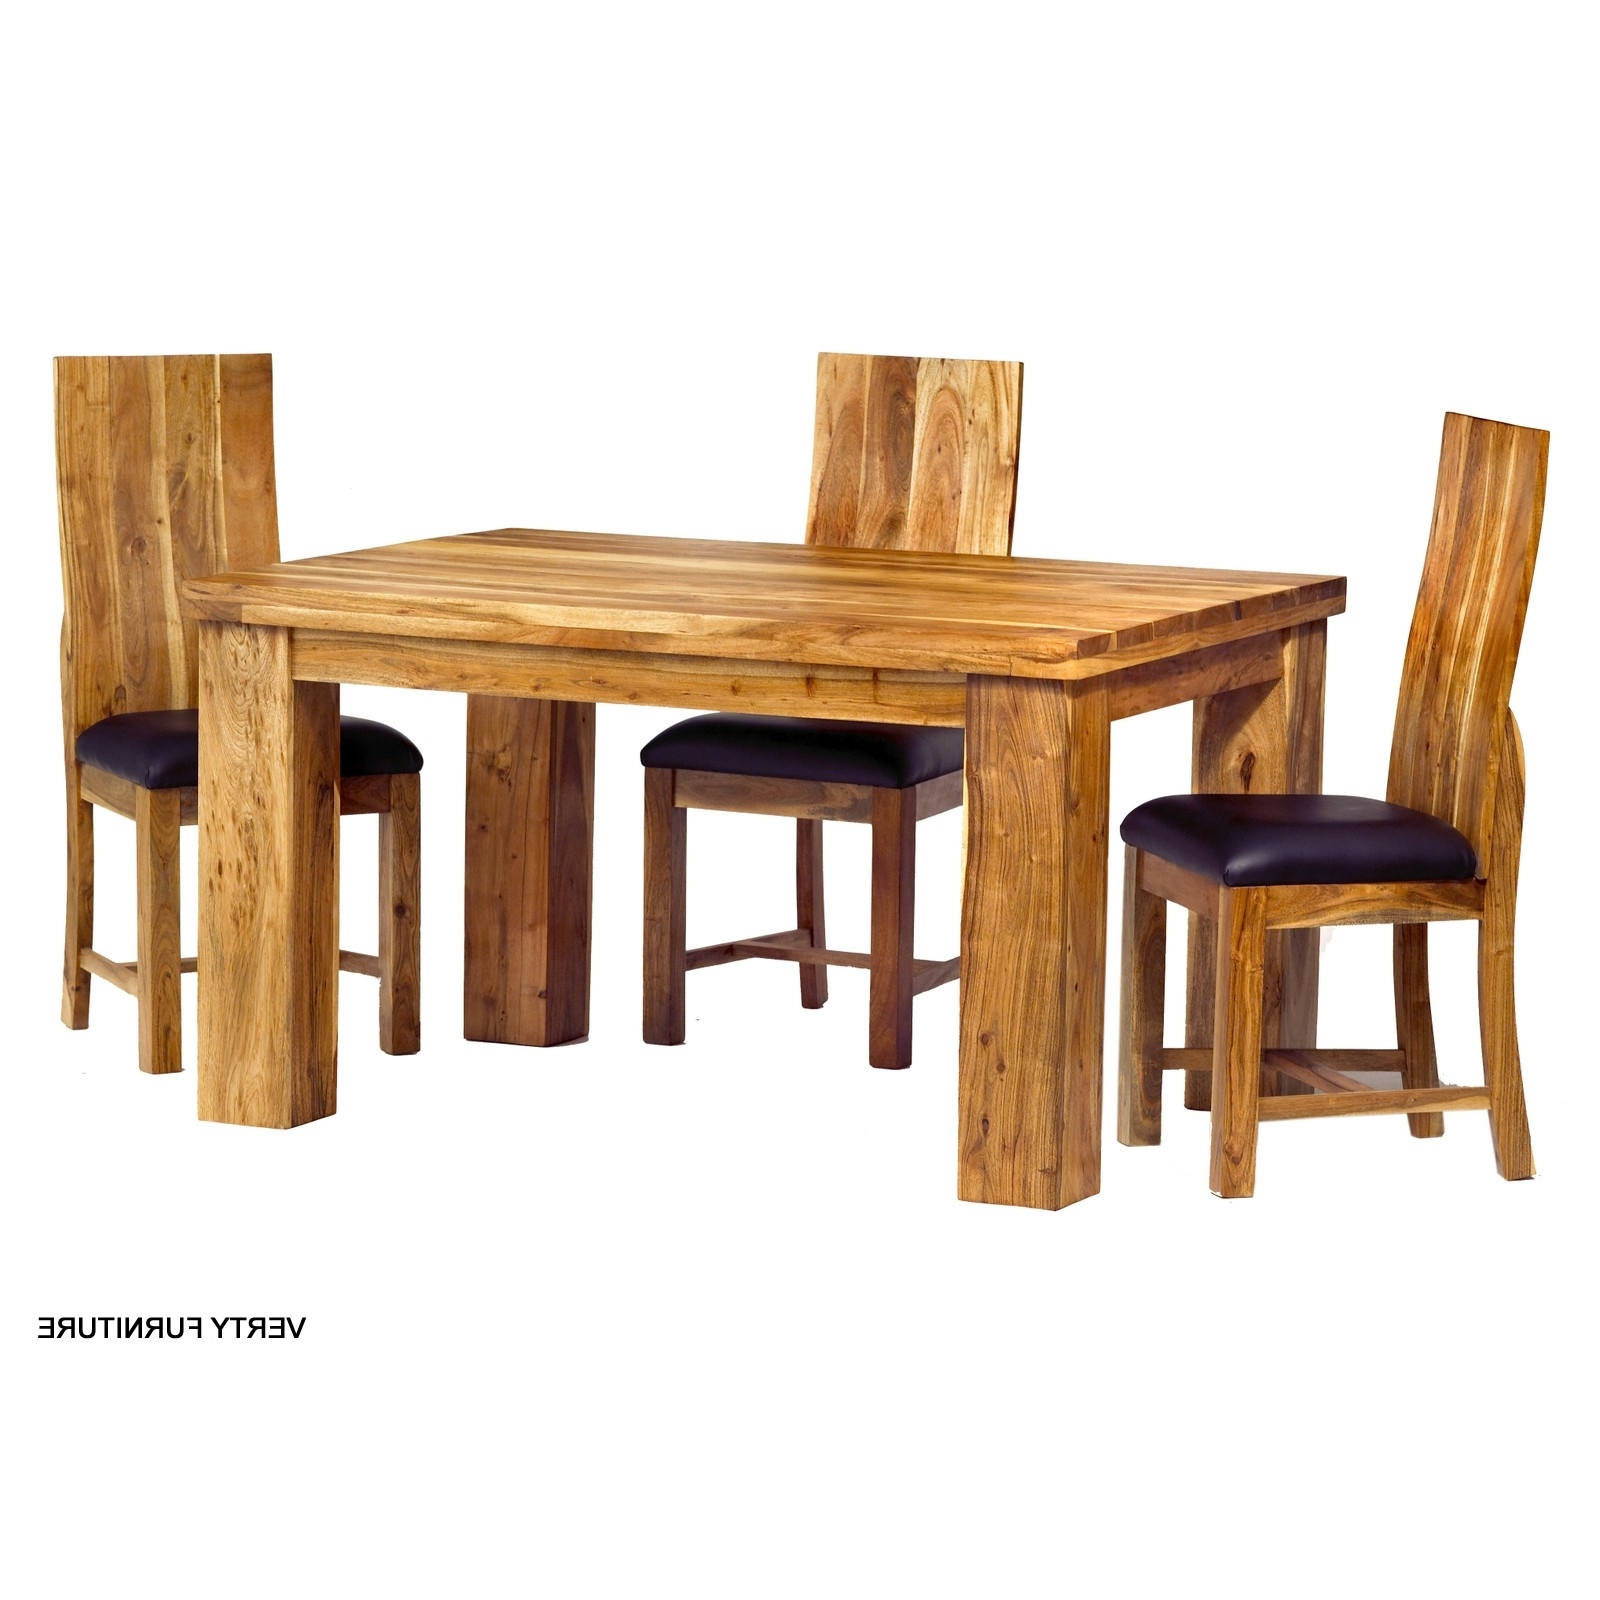 Famous Acacia Dining Table – Small With 4 Chairs – Verty Indian Furniture With Regard To Acacia Dining Tables (View 13 of 25)